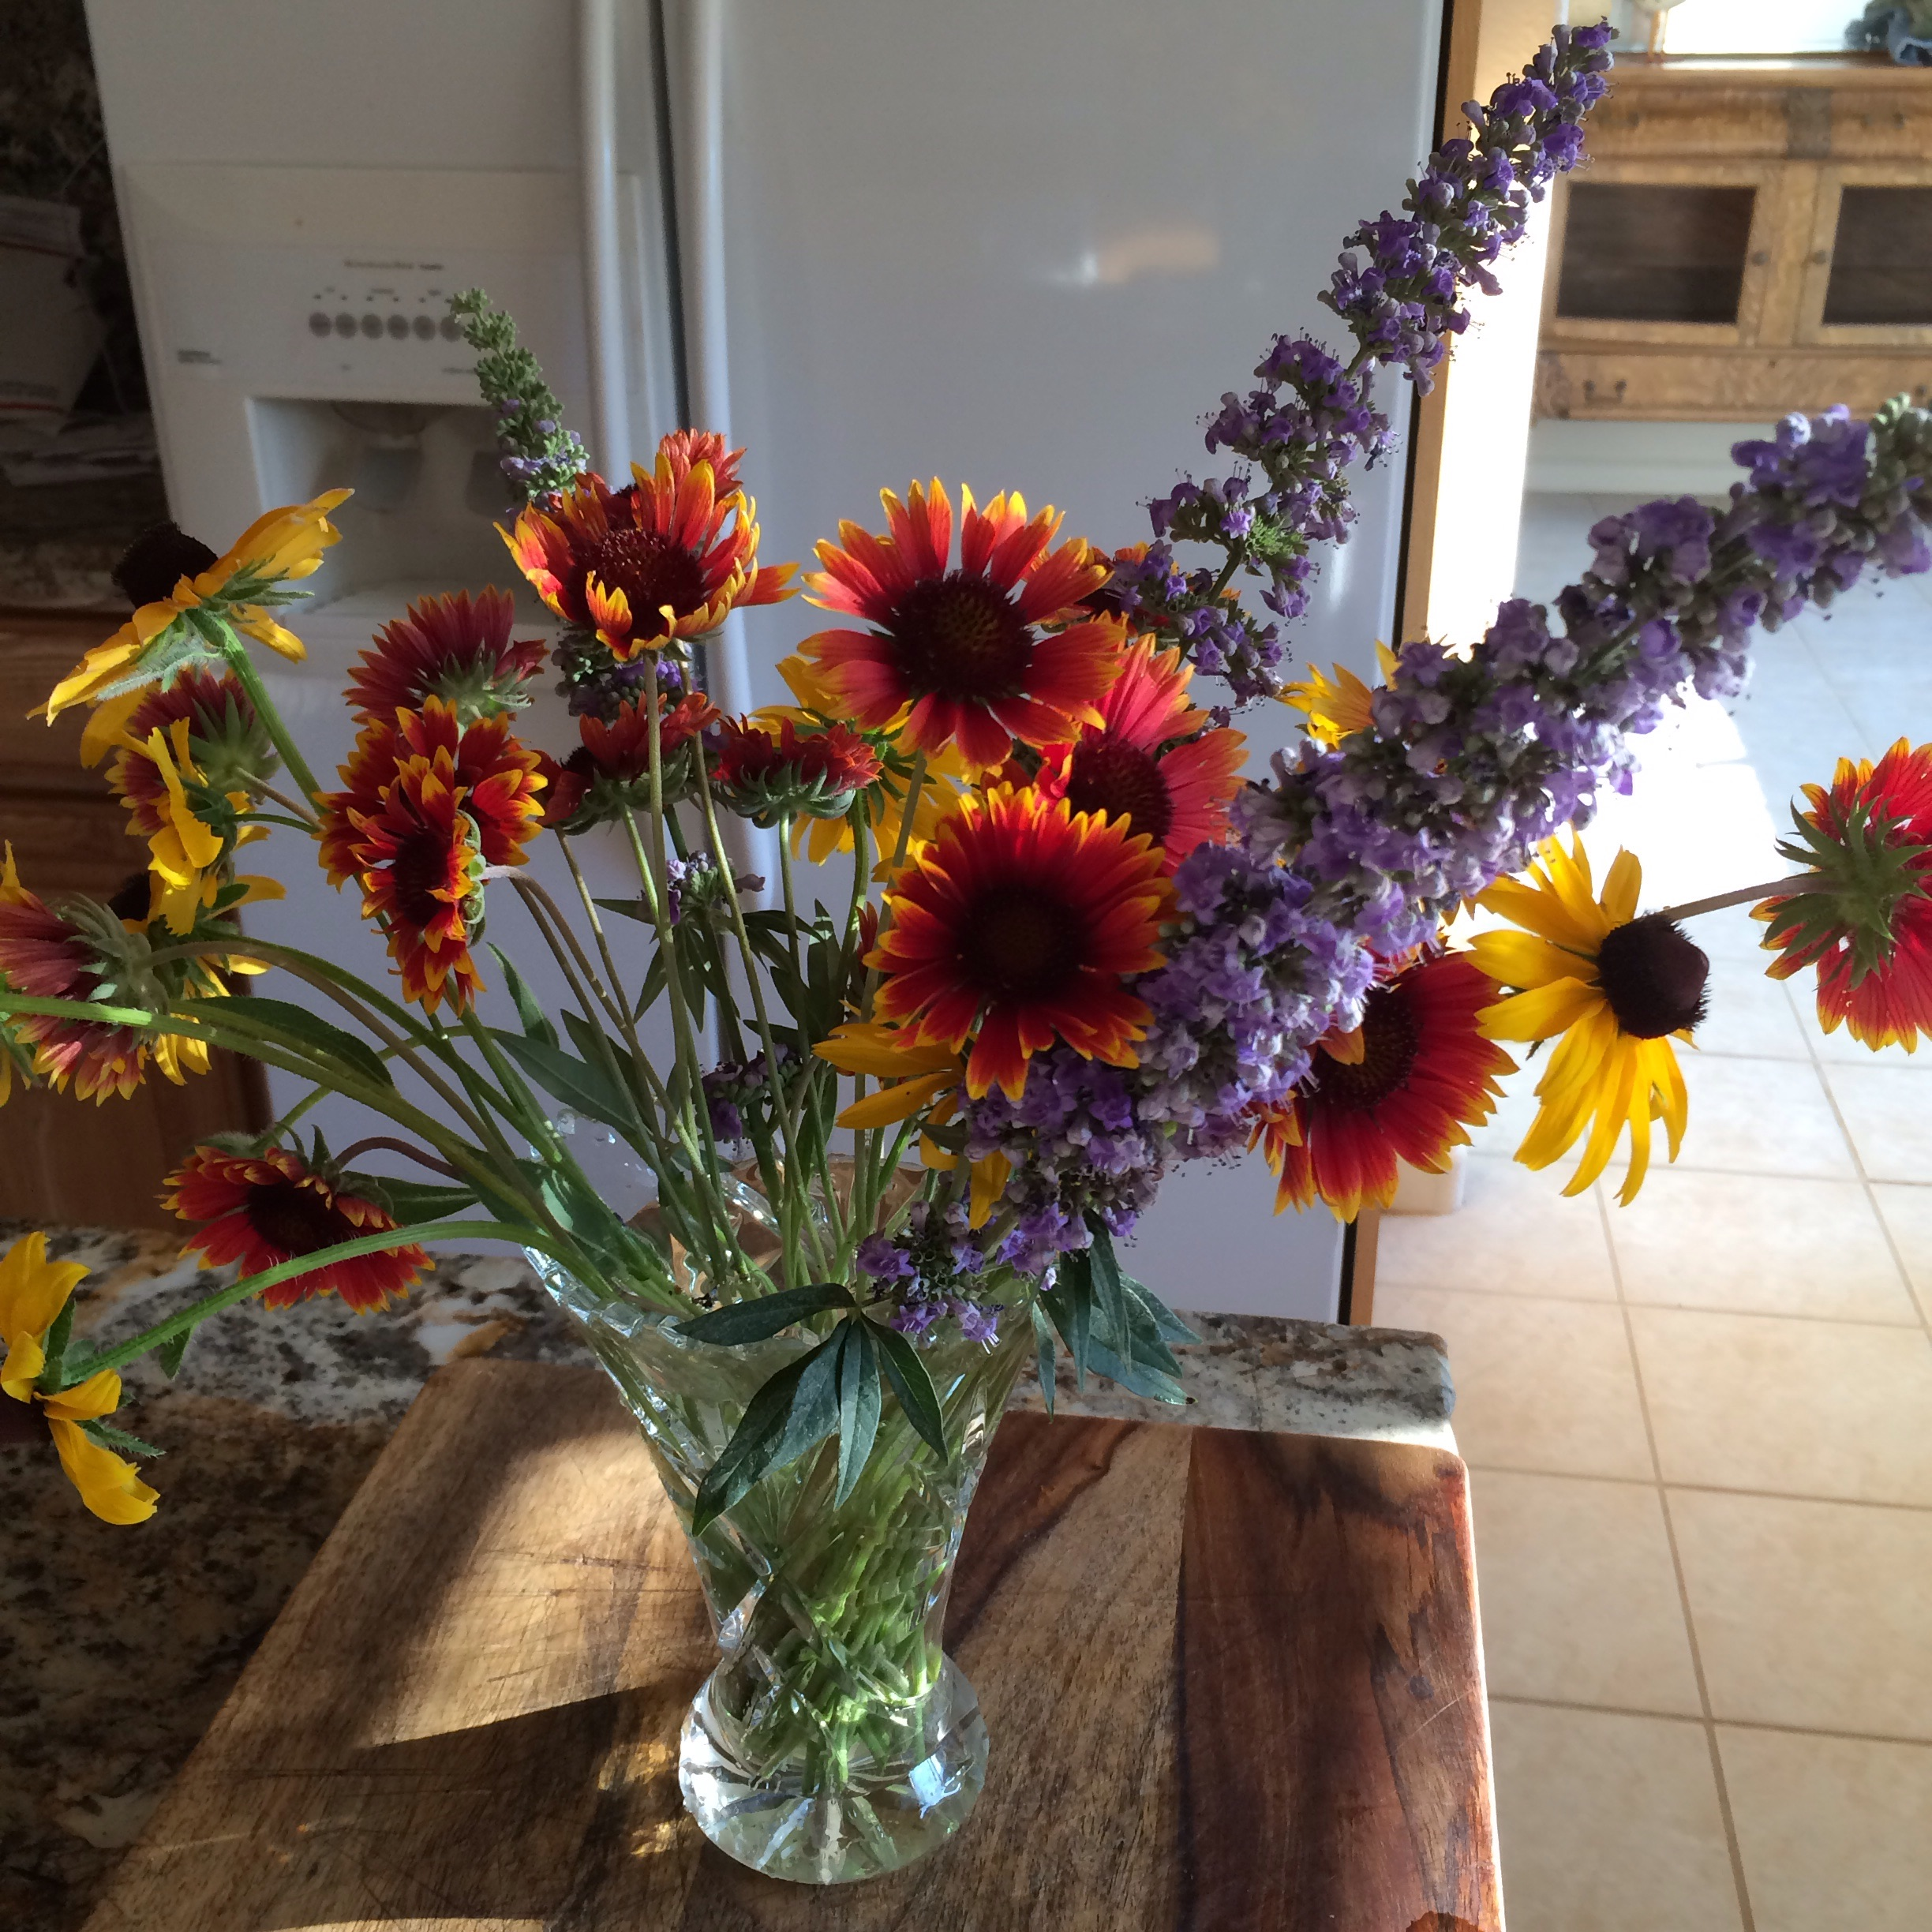 Just picked in the pasture trying to keep the beauty even when it's 111 degrees here on the farm